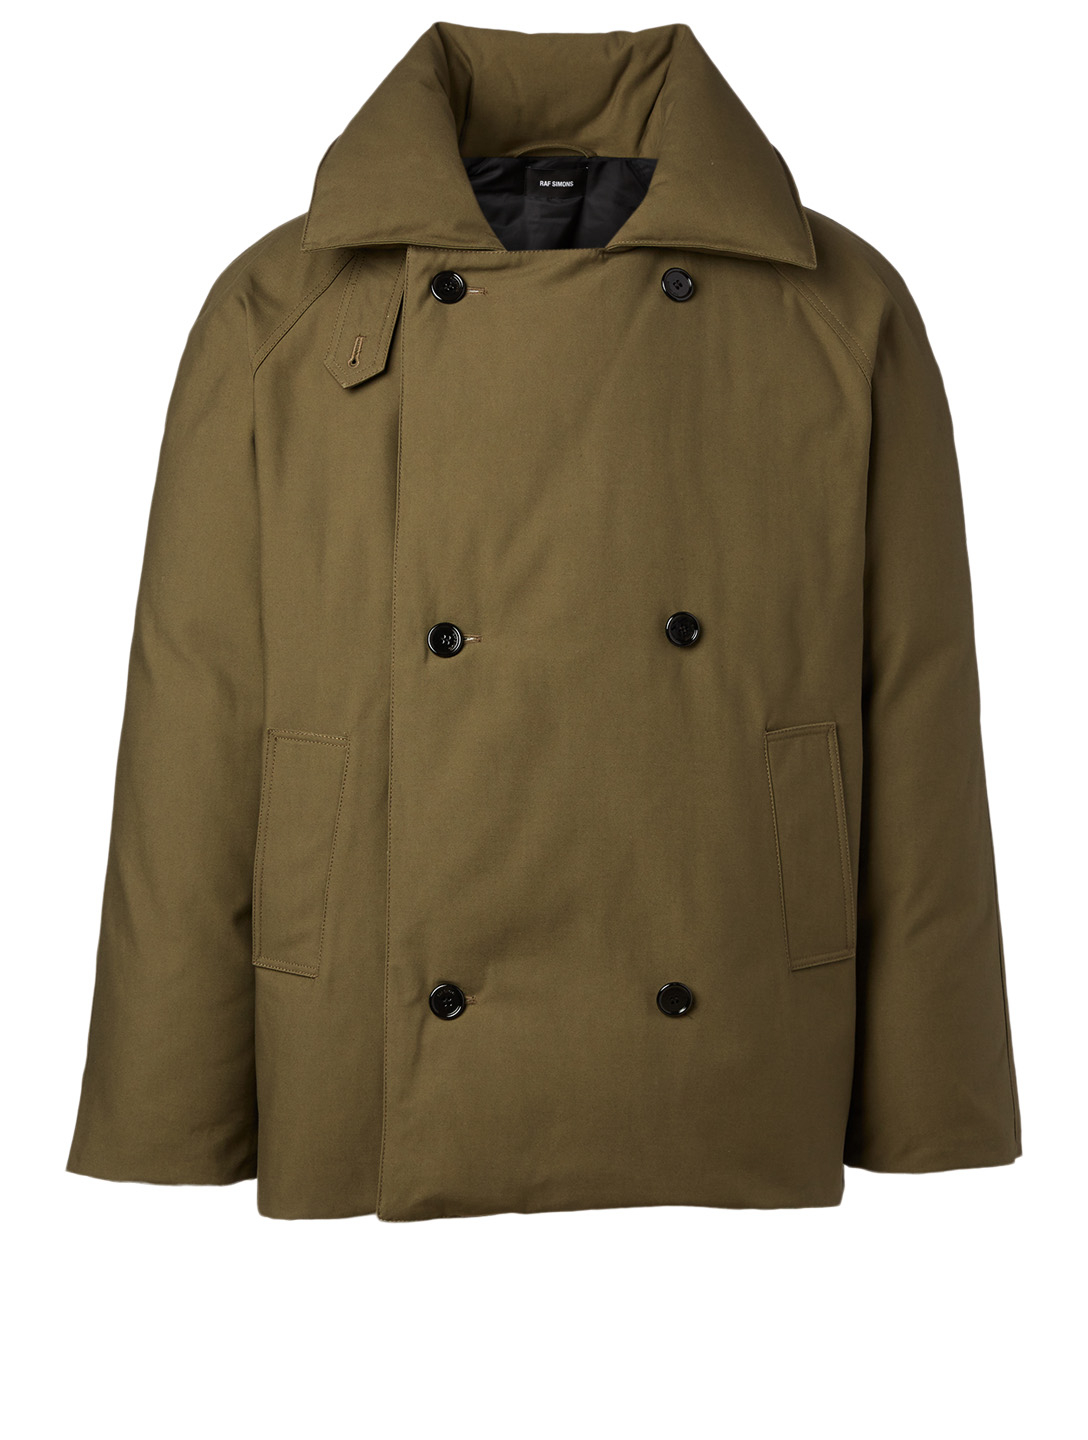 RAF SIMONS Double-Breasted Down Coat Men's Beige